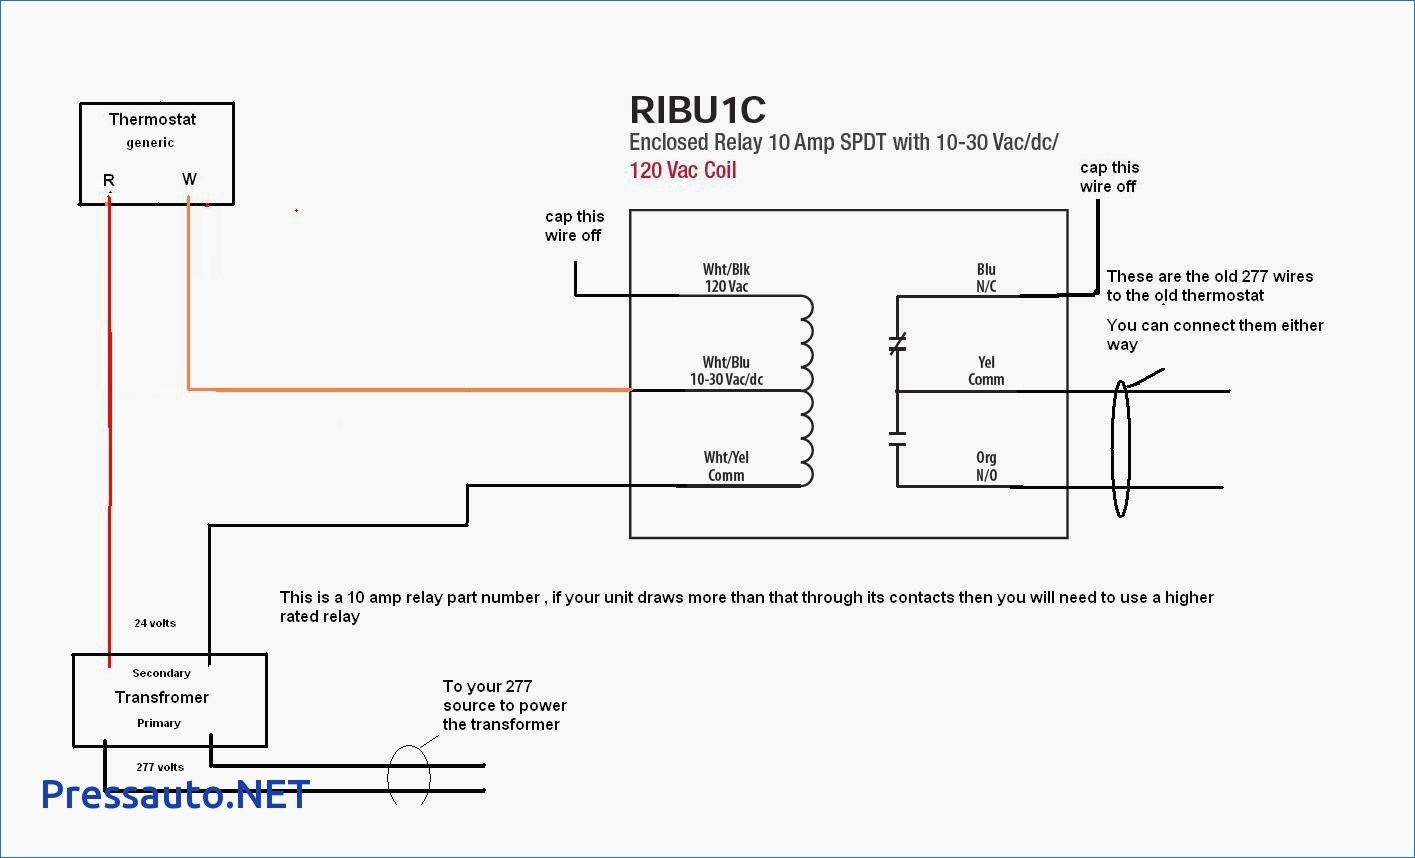 Ribu1s Wiring Diagram - Ribu1c Wiring Diagram Download Gallery Of Ribu1c Wiring Diagram 8 B Download Wiring Diagram 9l